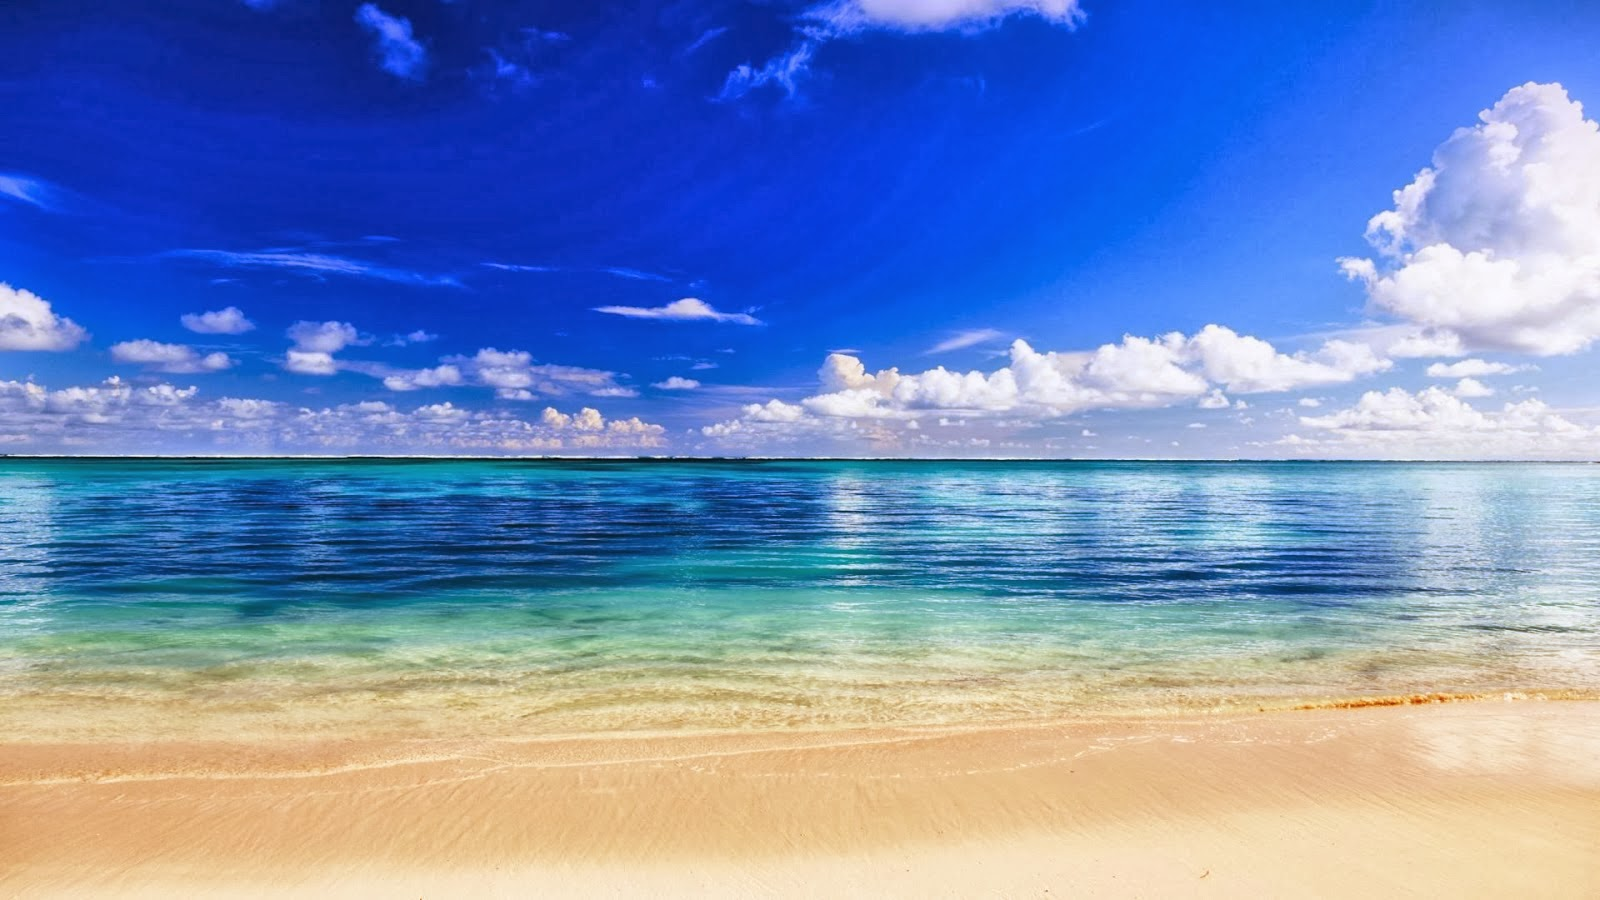 All Hot Informations: Download Blue Water White Sand Beach